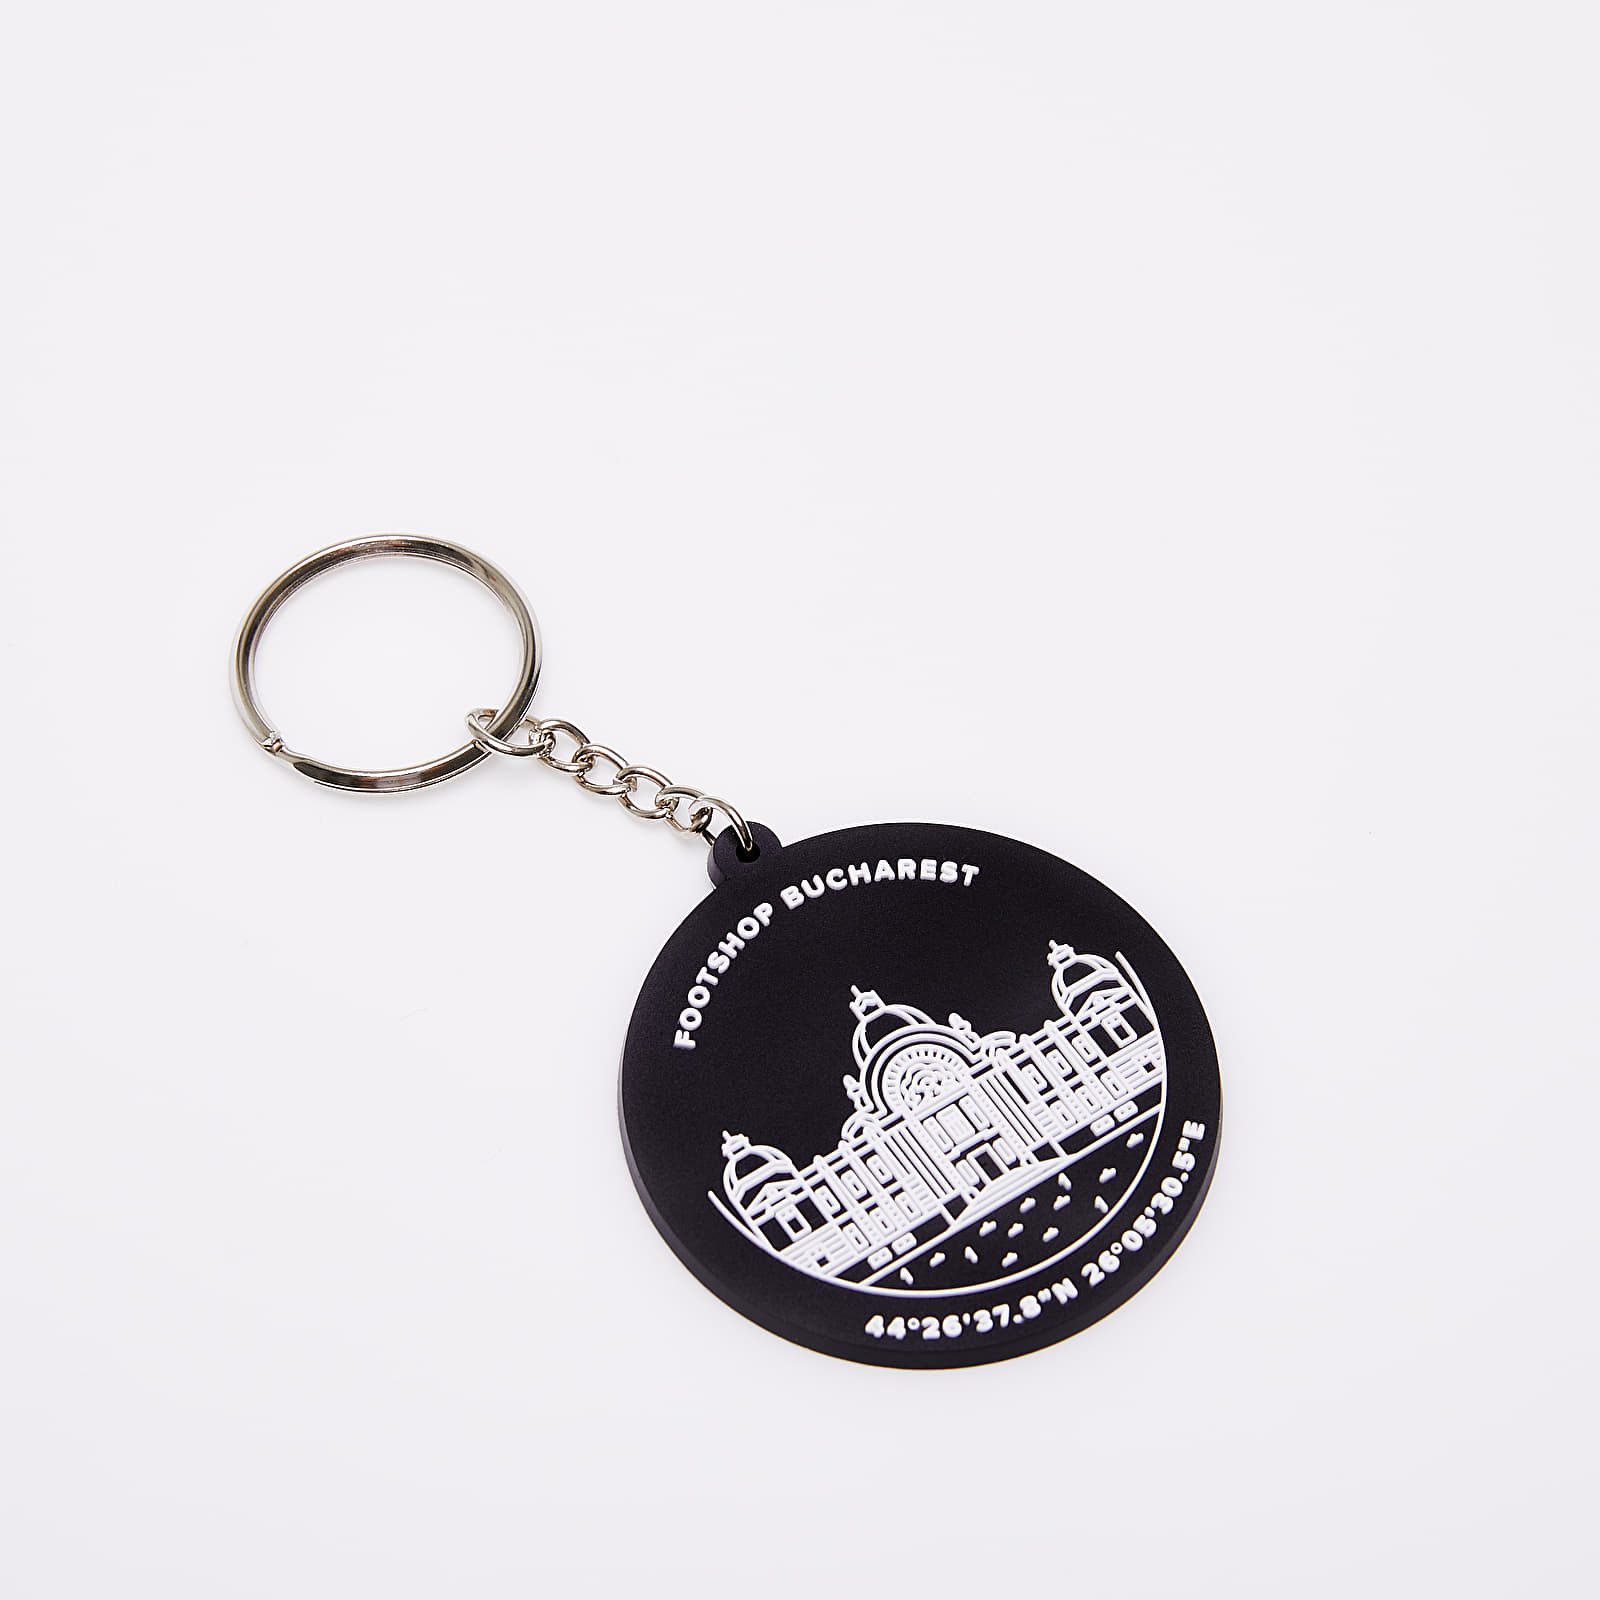 Other Footshop Bucharest Keychain Black